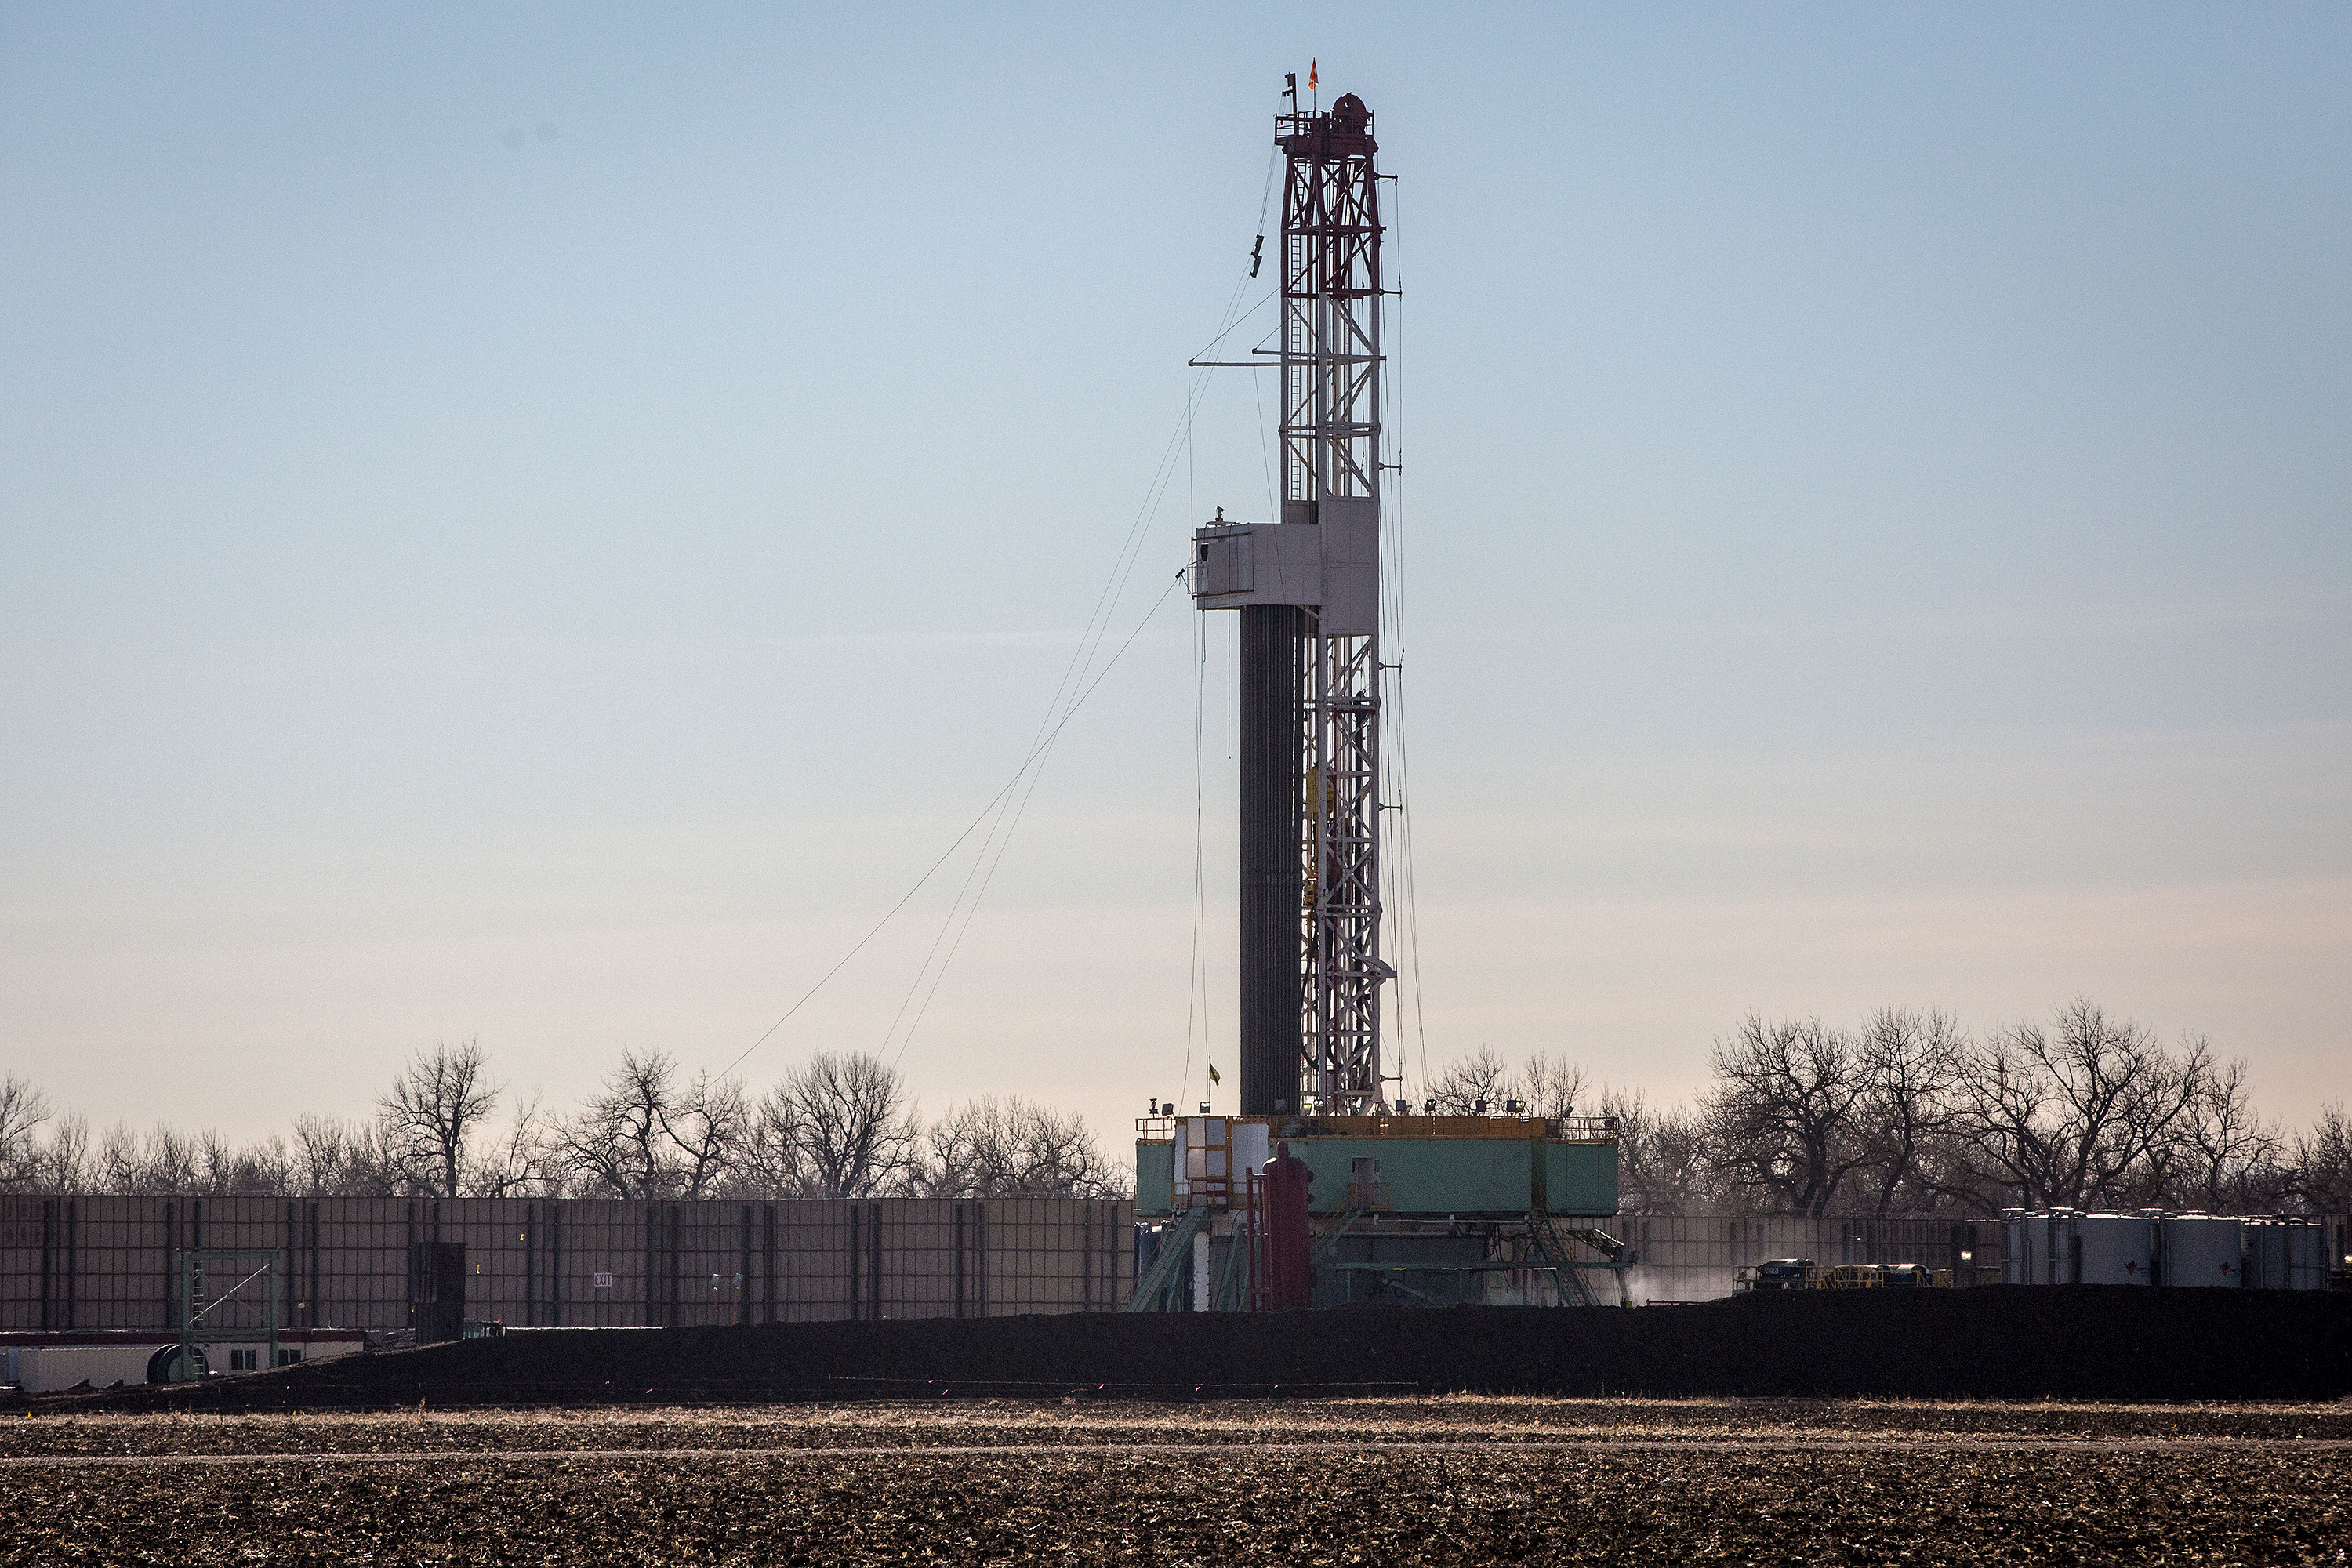 A drilling rig near Hwy 85 in Weld County Dec. 14, 2018.